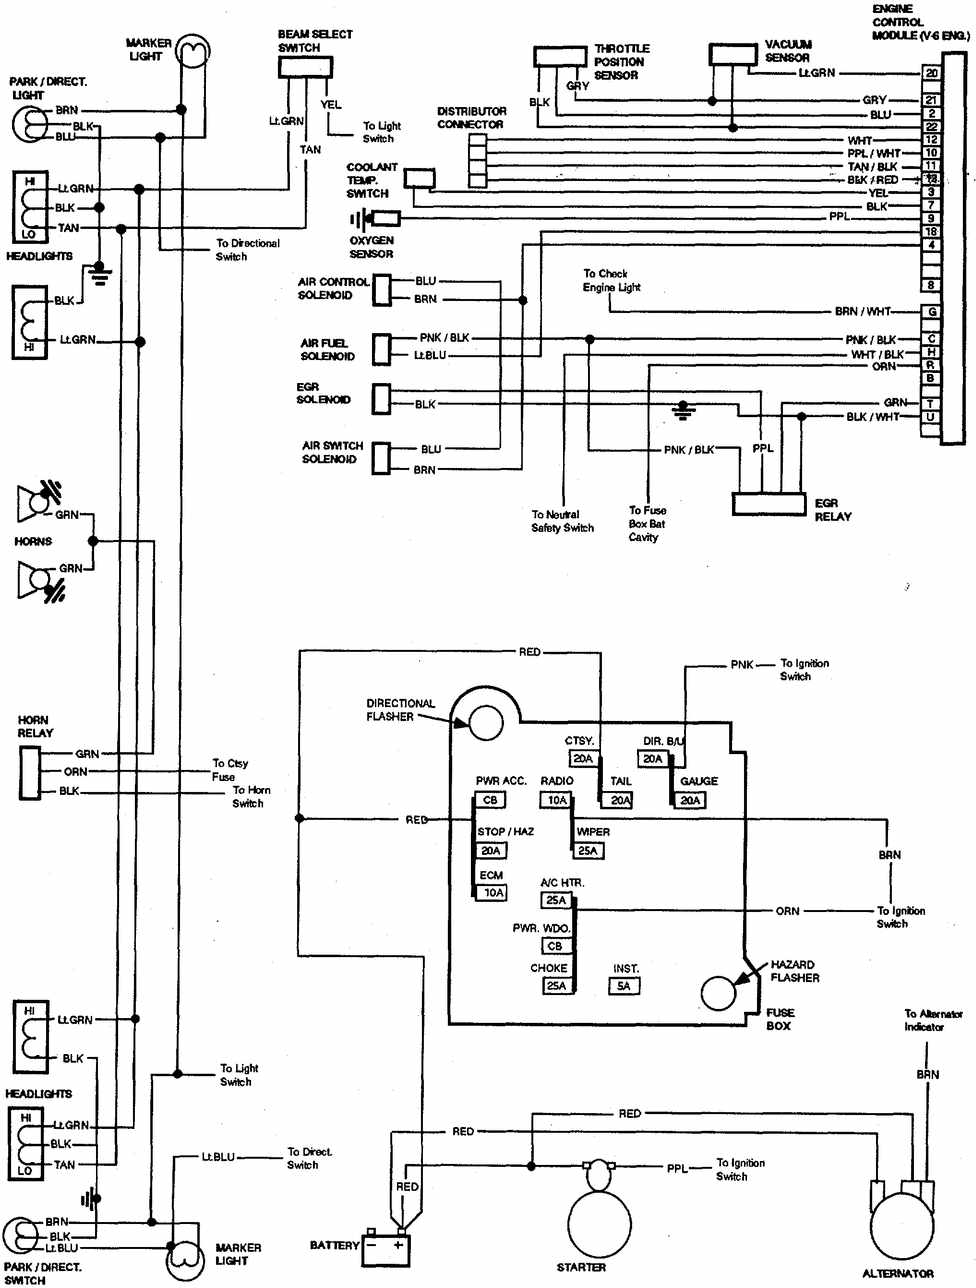 2006 chevy silverado fuse box wiring diagram